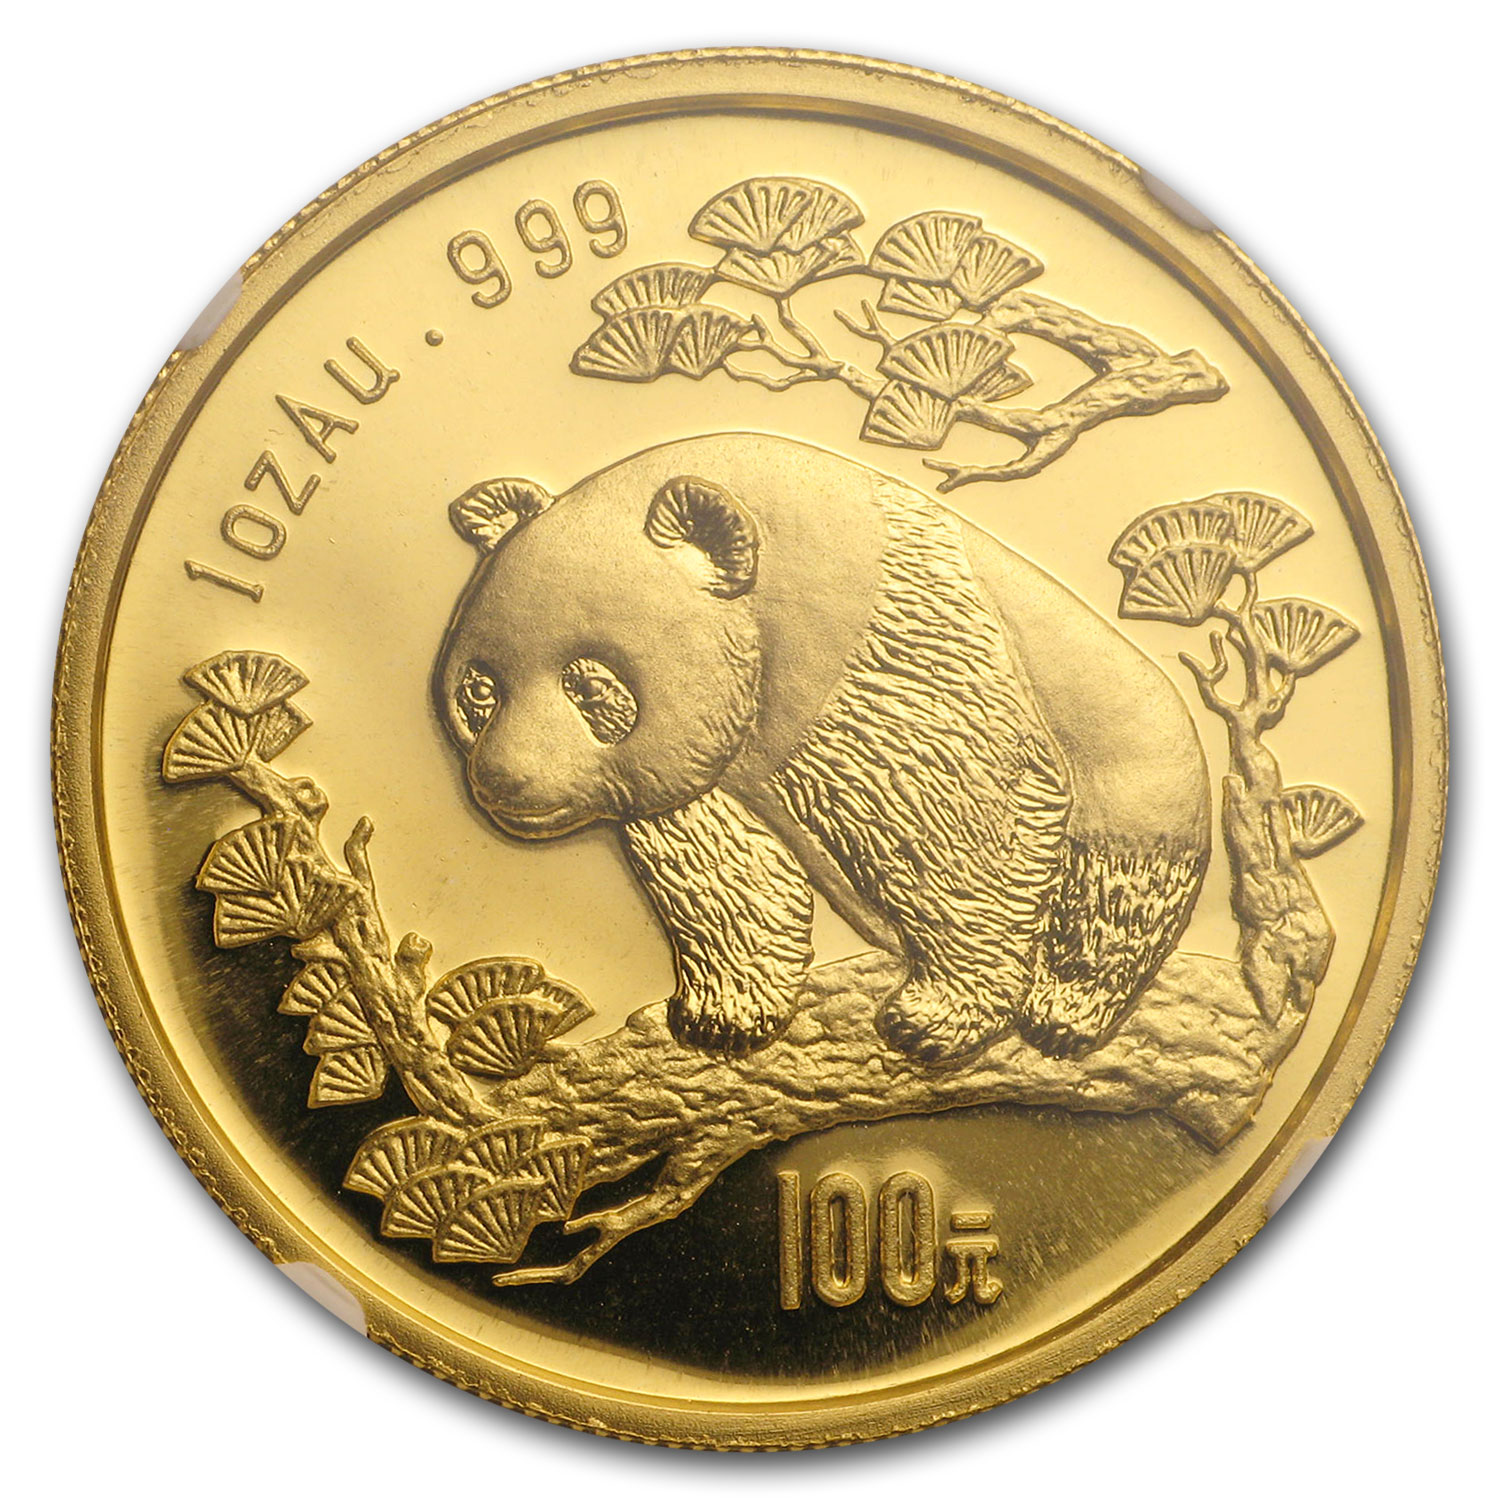 1997 China 1 oz Gold Panda Small Date MS-69 NGC